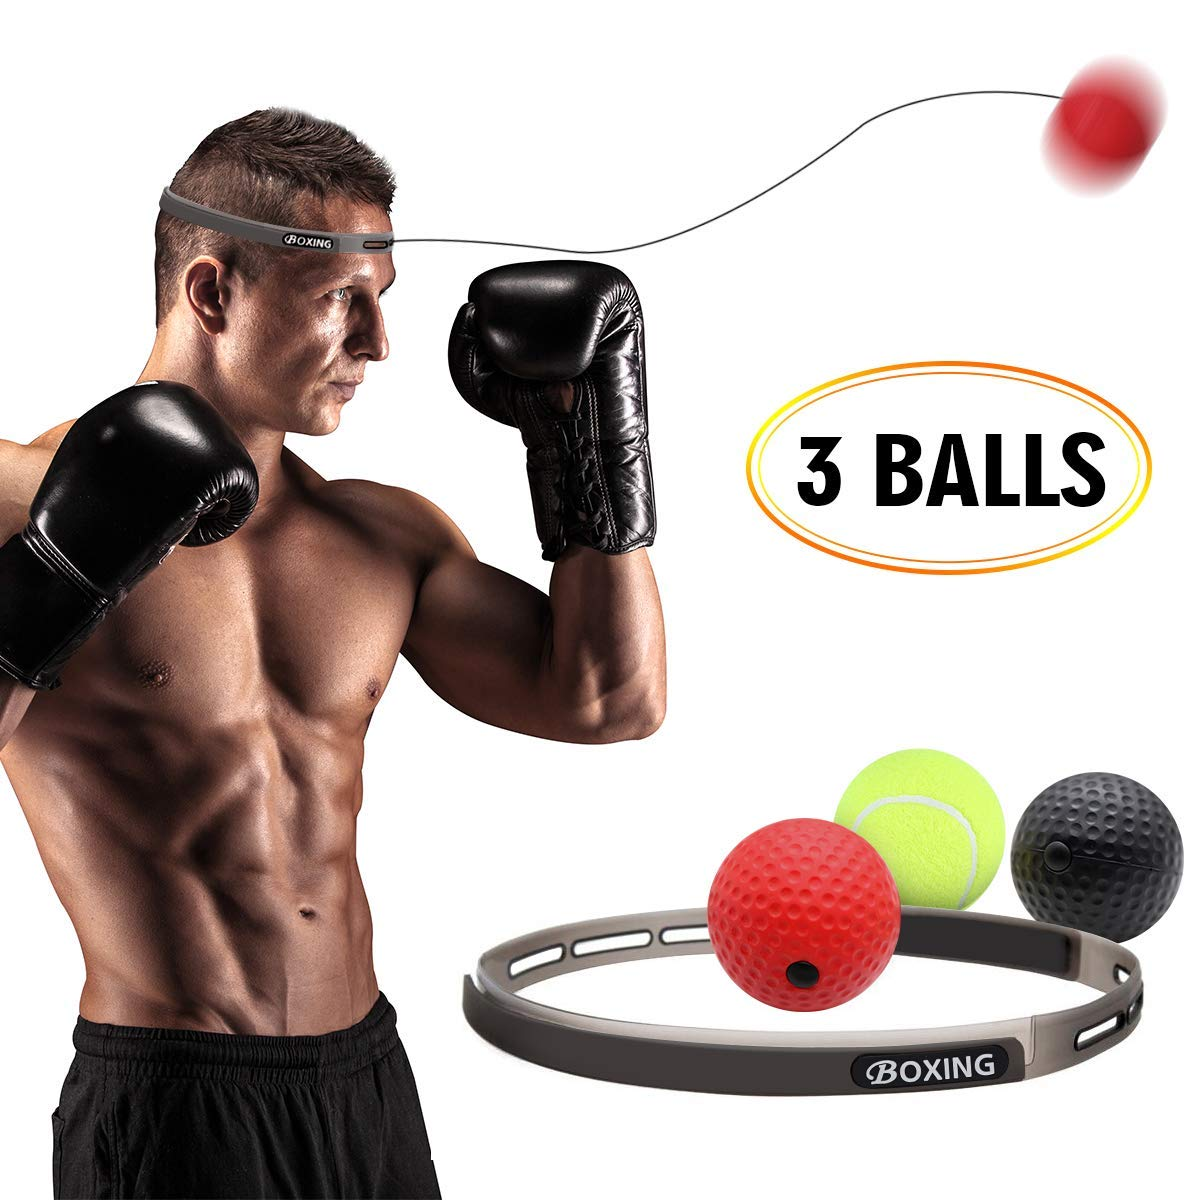 Hand Eye Coordination and Agility GEJRIO Boxing Reflex Ball on String with Headband 3 Difficulty Levels Boxing Fight Ball Equipment for Improving Punching Speed Reactions